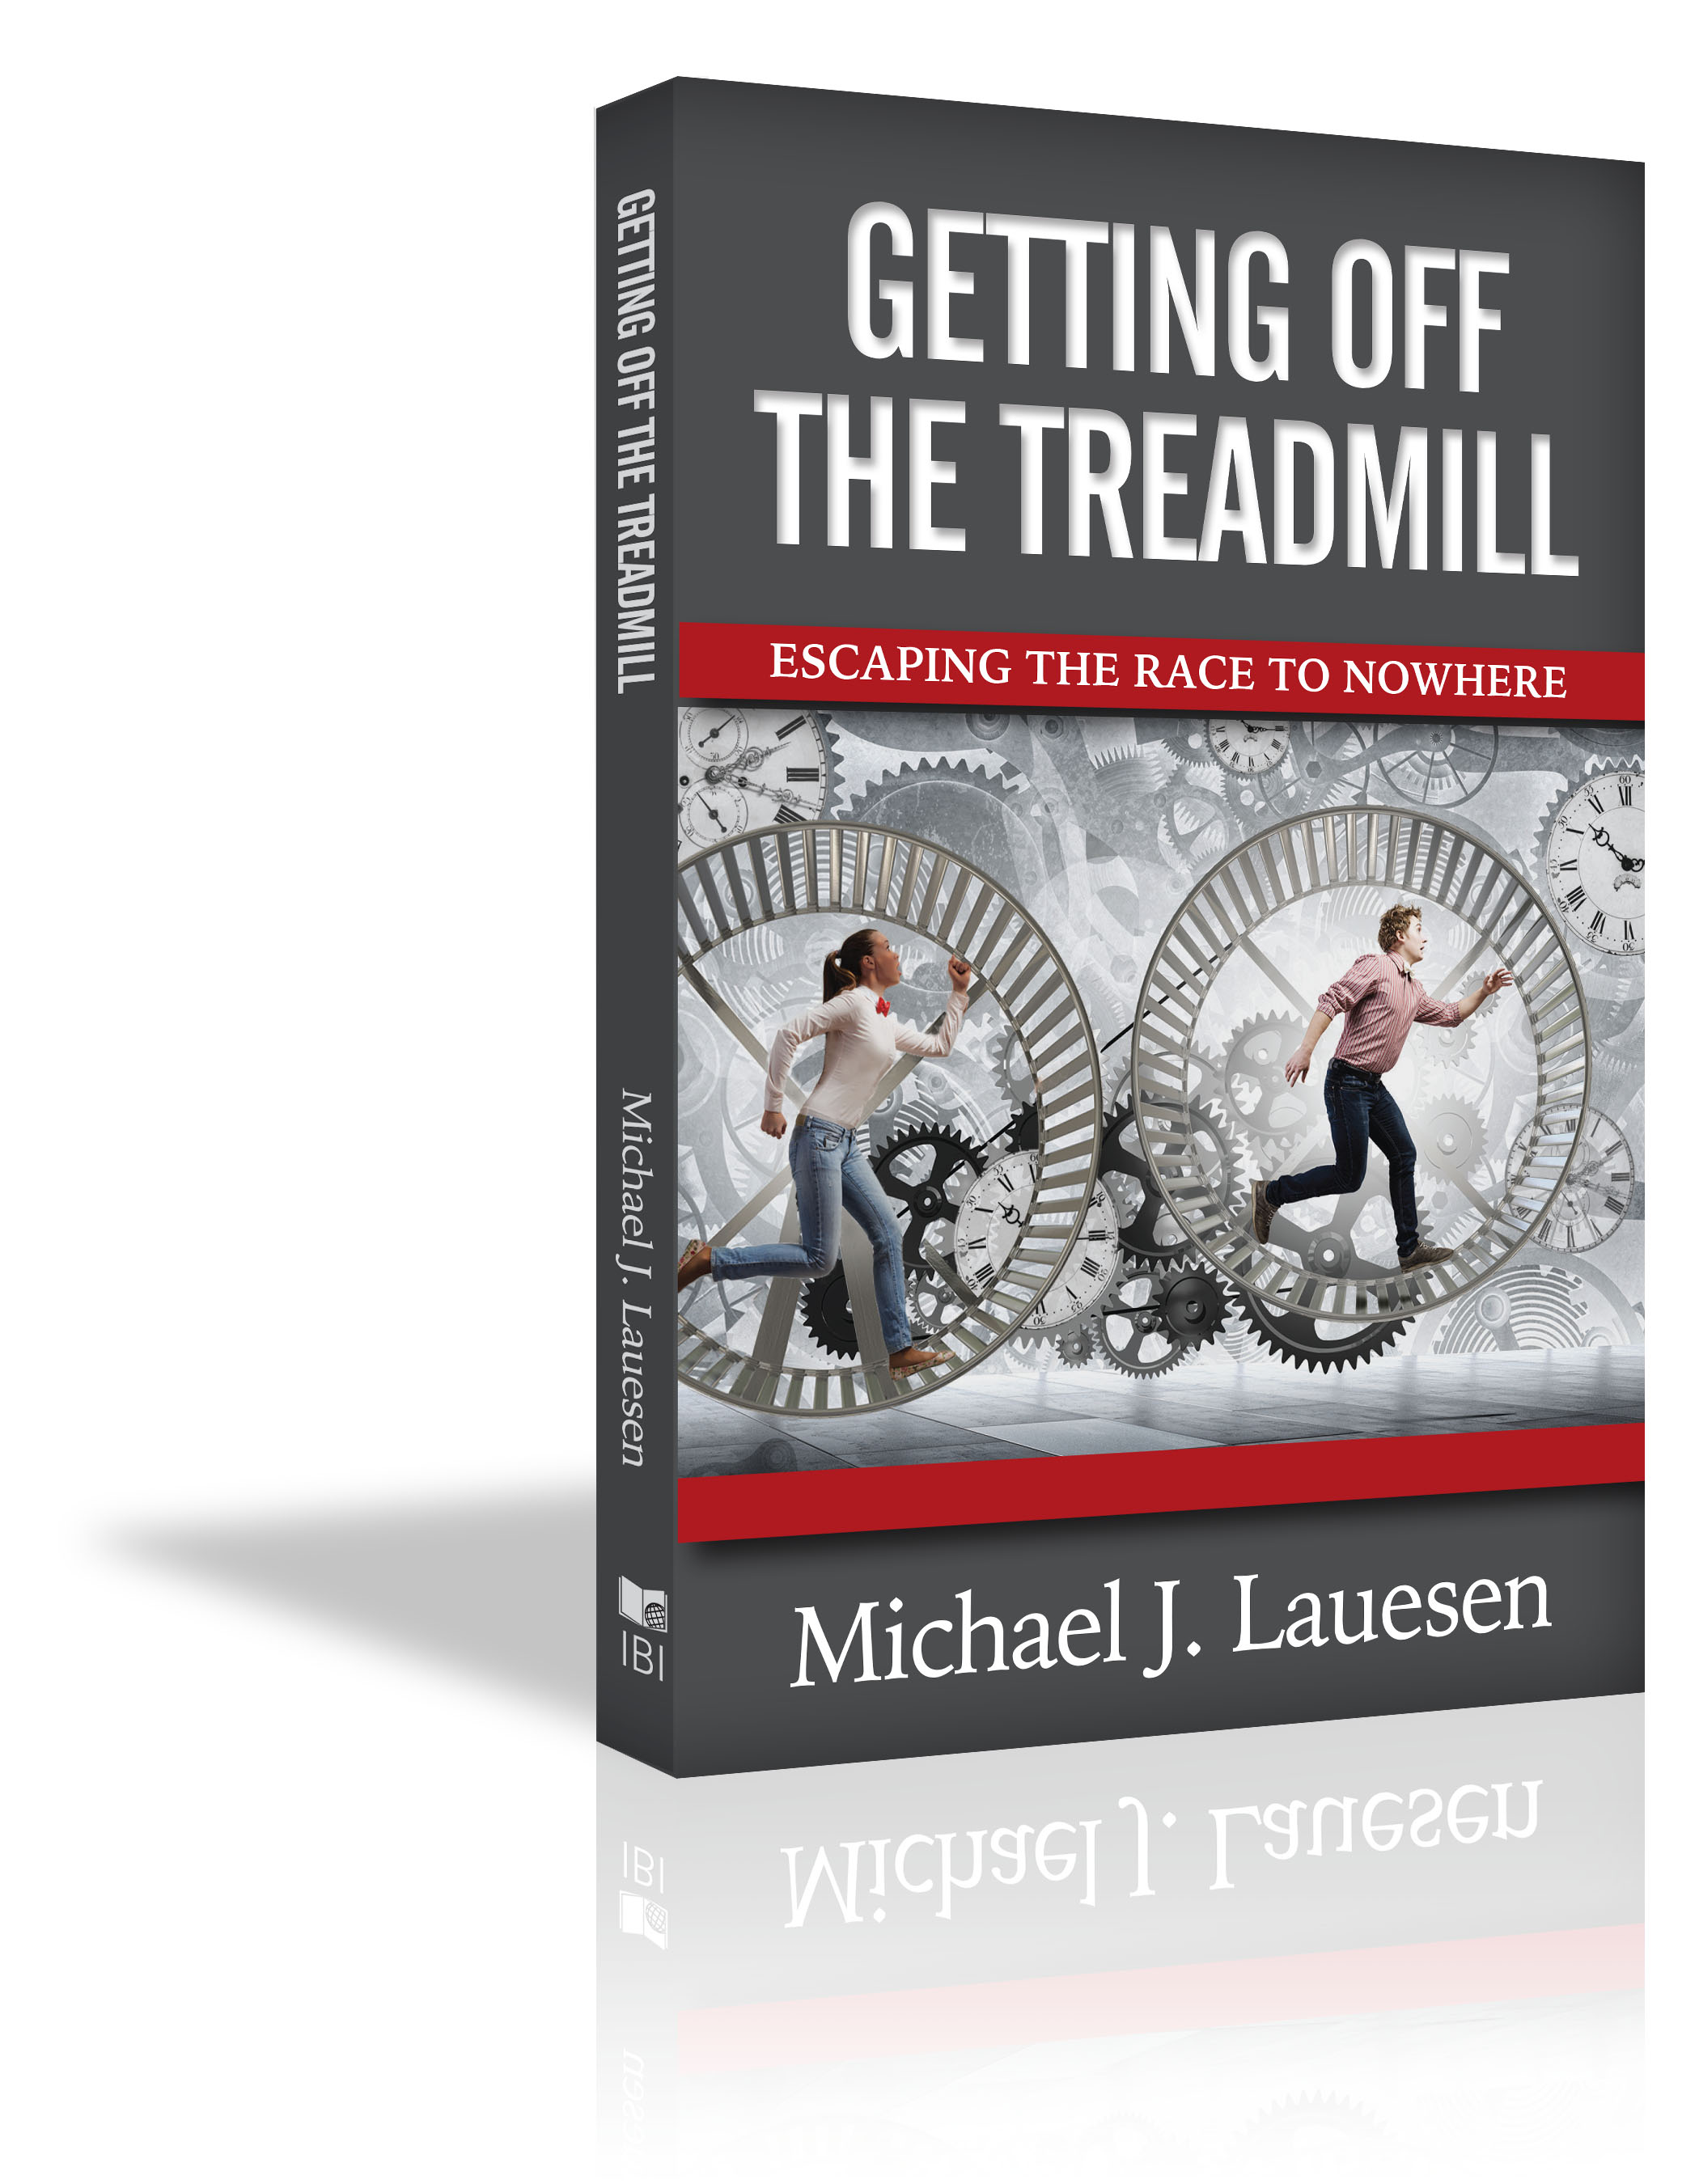 Getting Off The Treadmill - Mike Lauesen